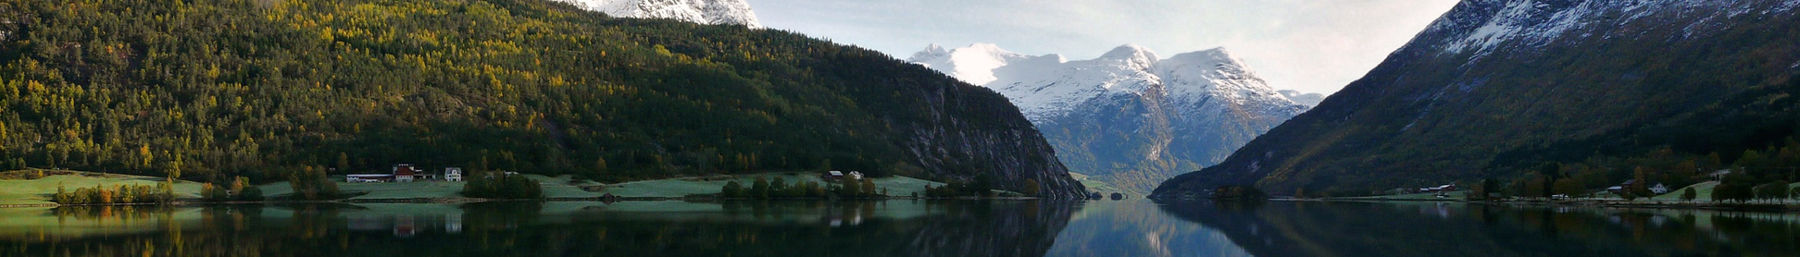 Stryn lake in October